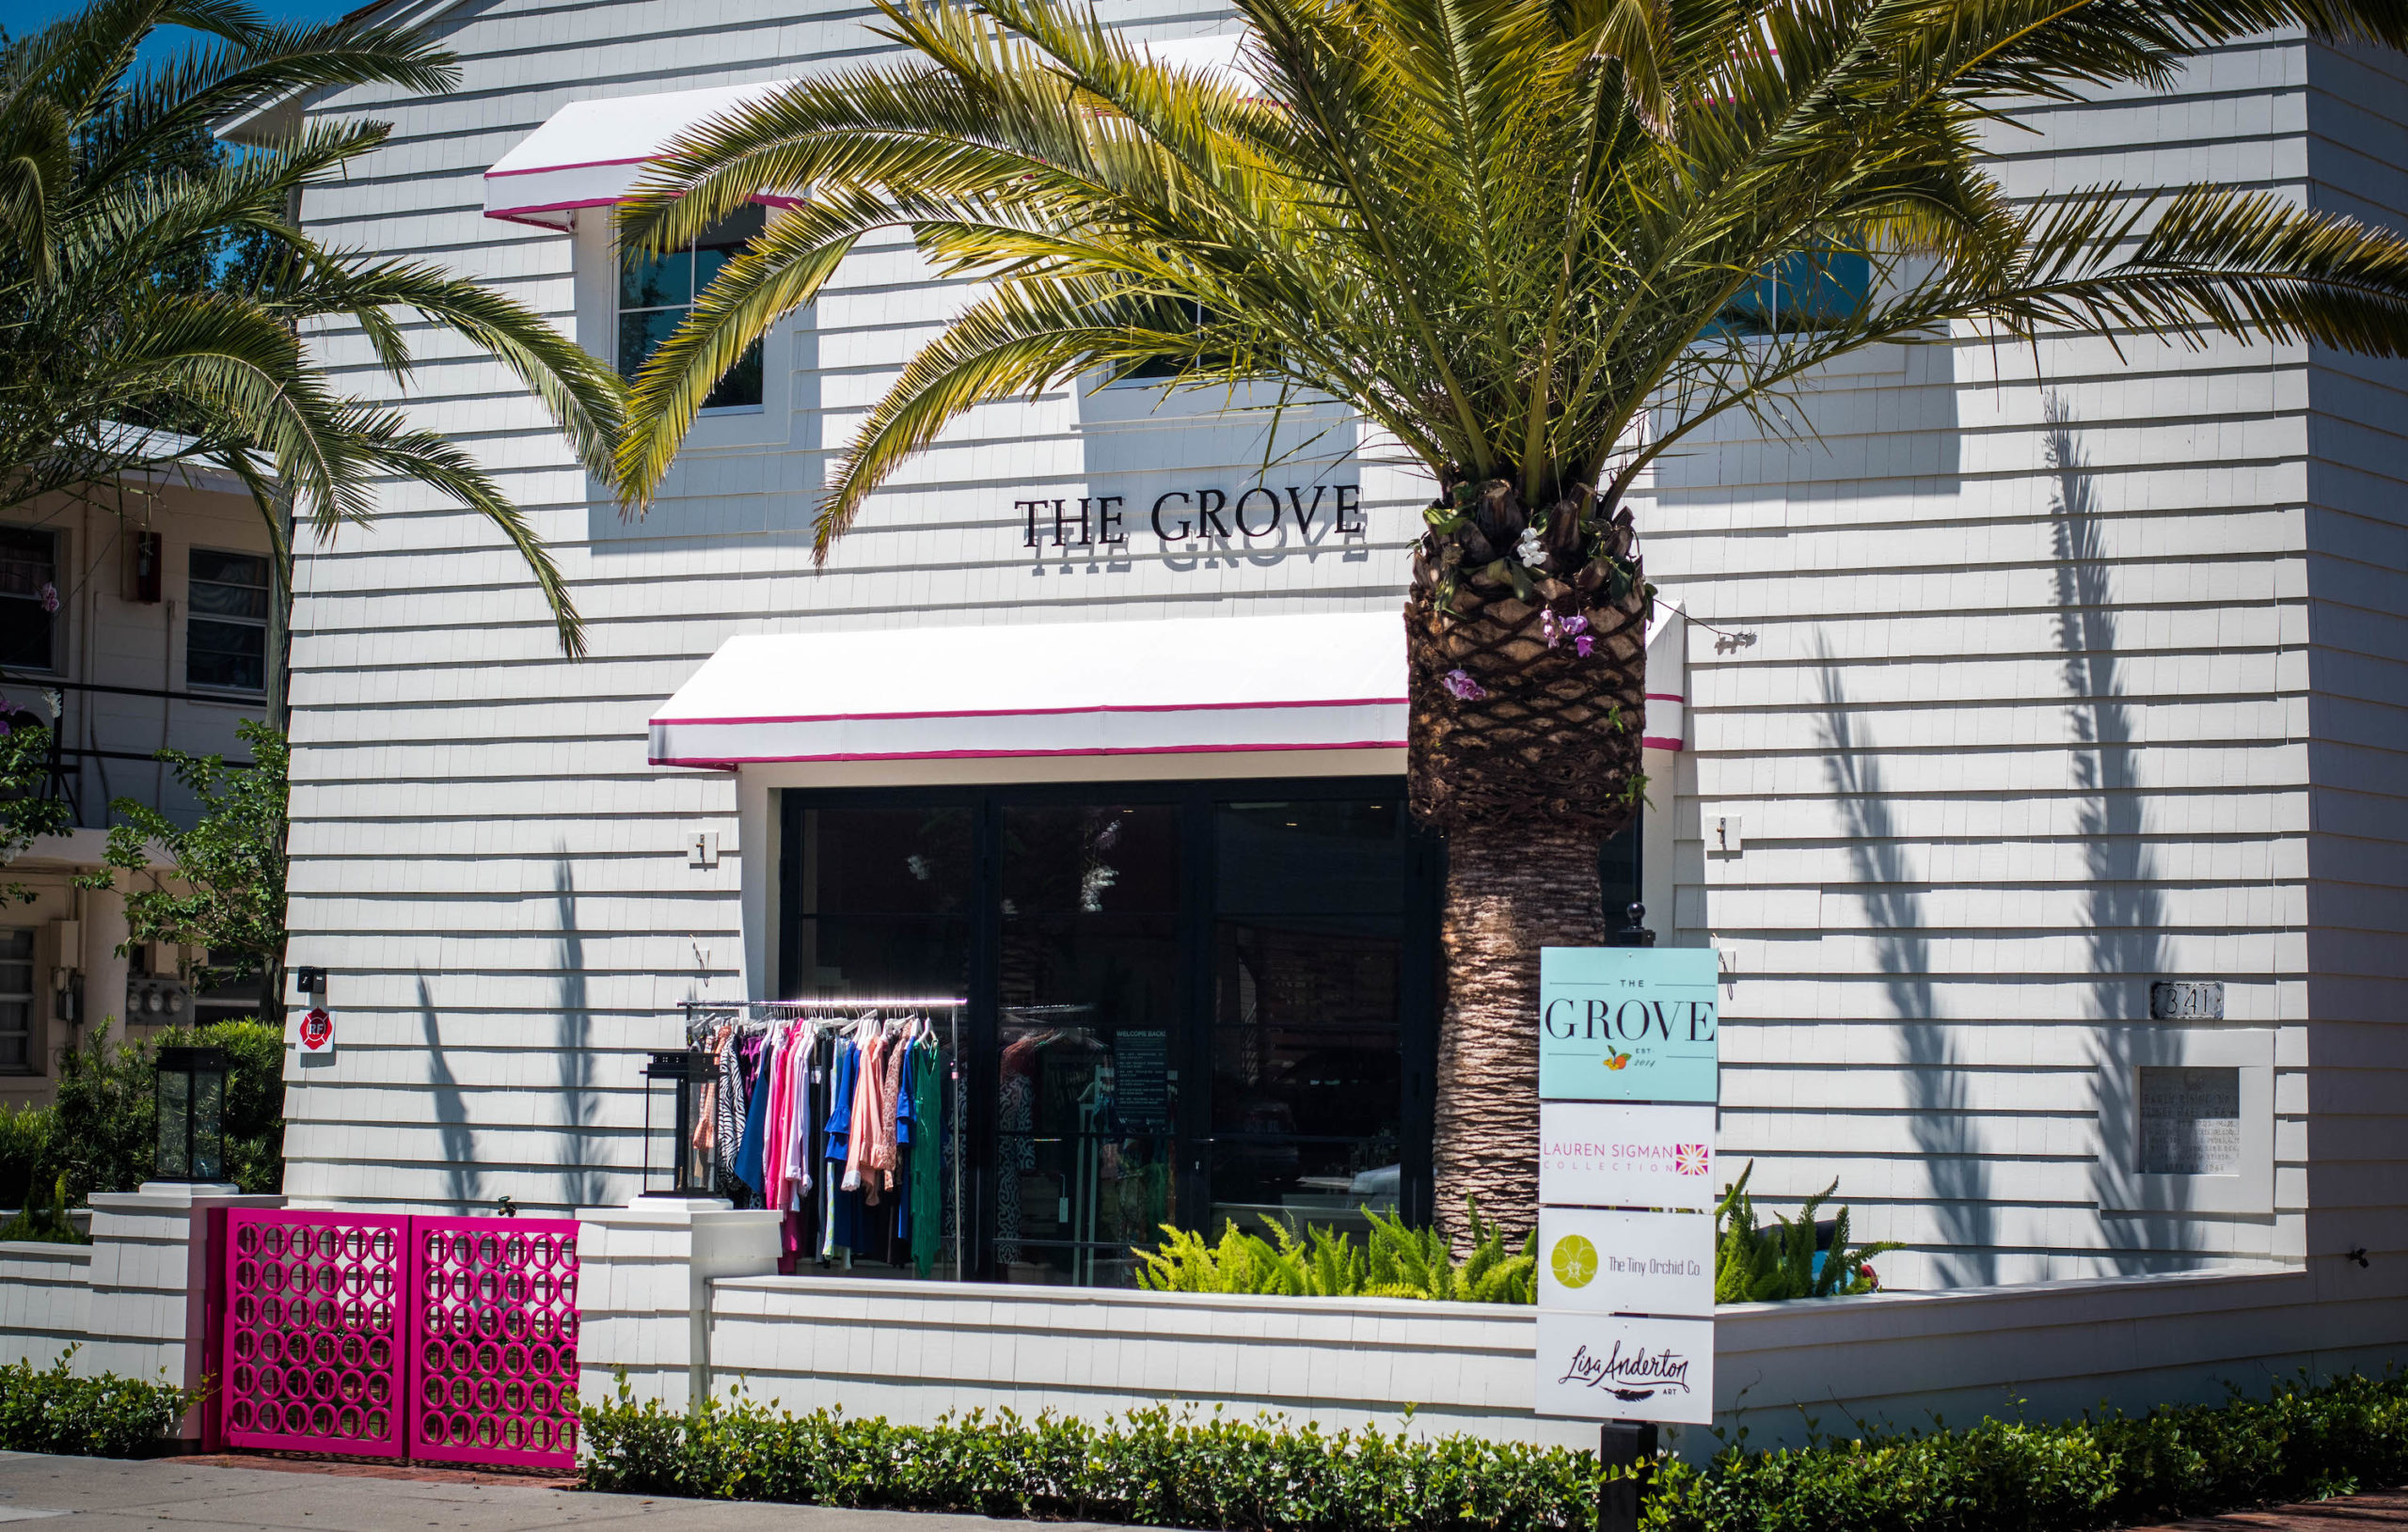 The Grove boutique store.